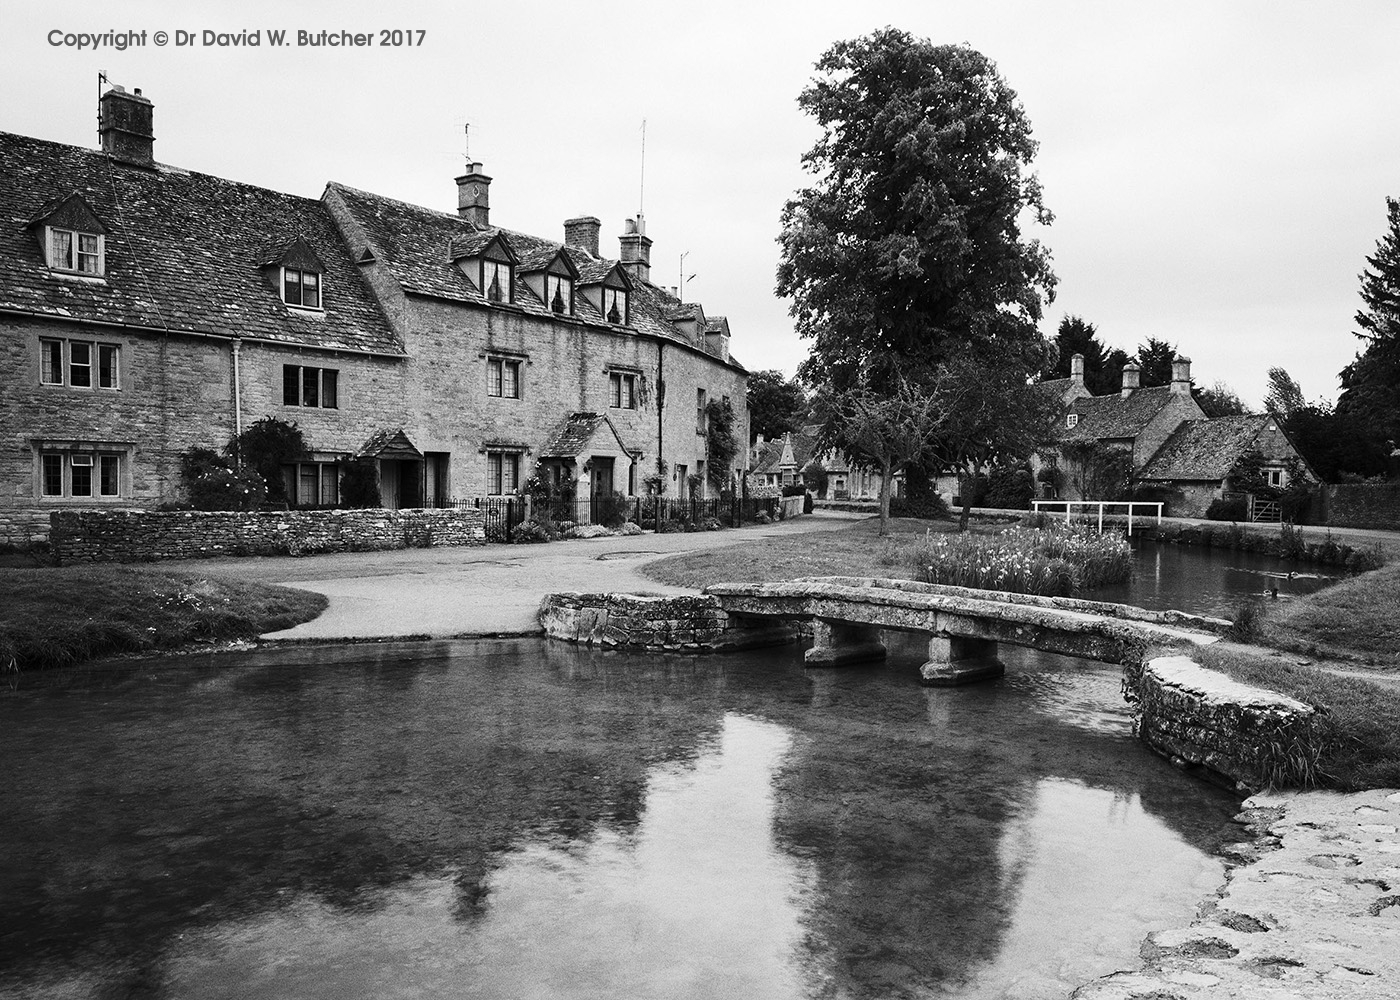 Lower Slaughter and River Eye, Cotswolds, England